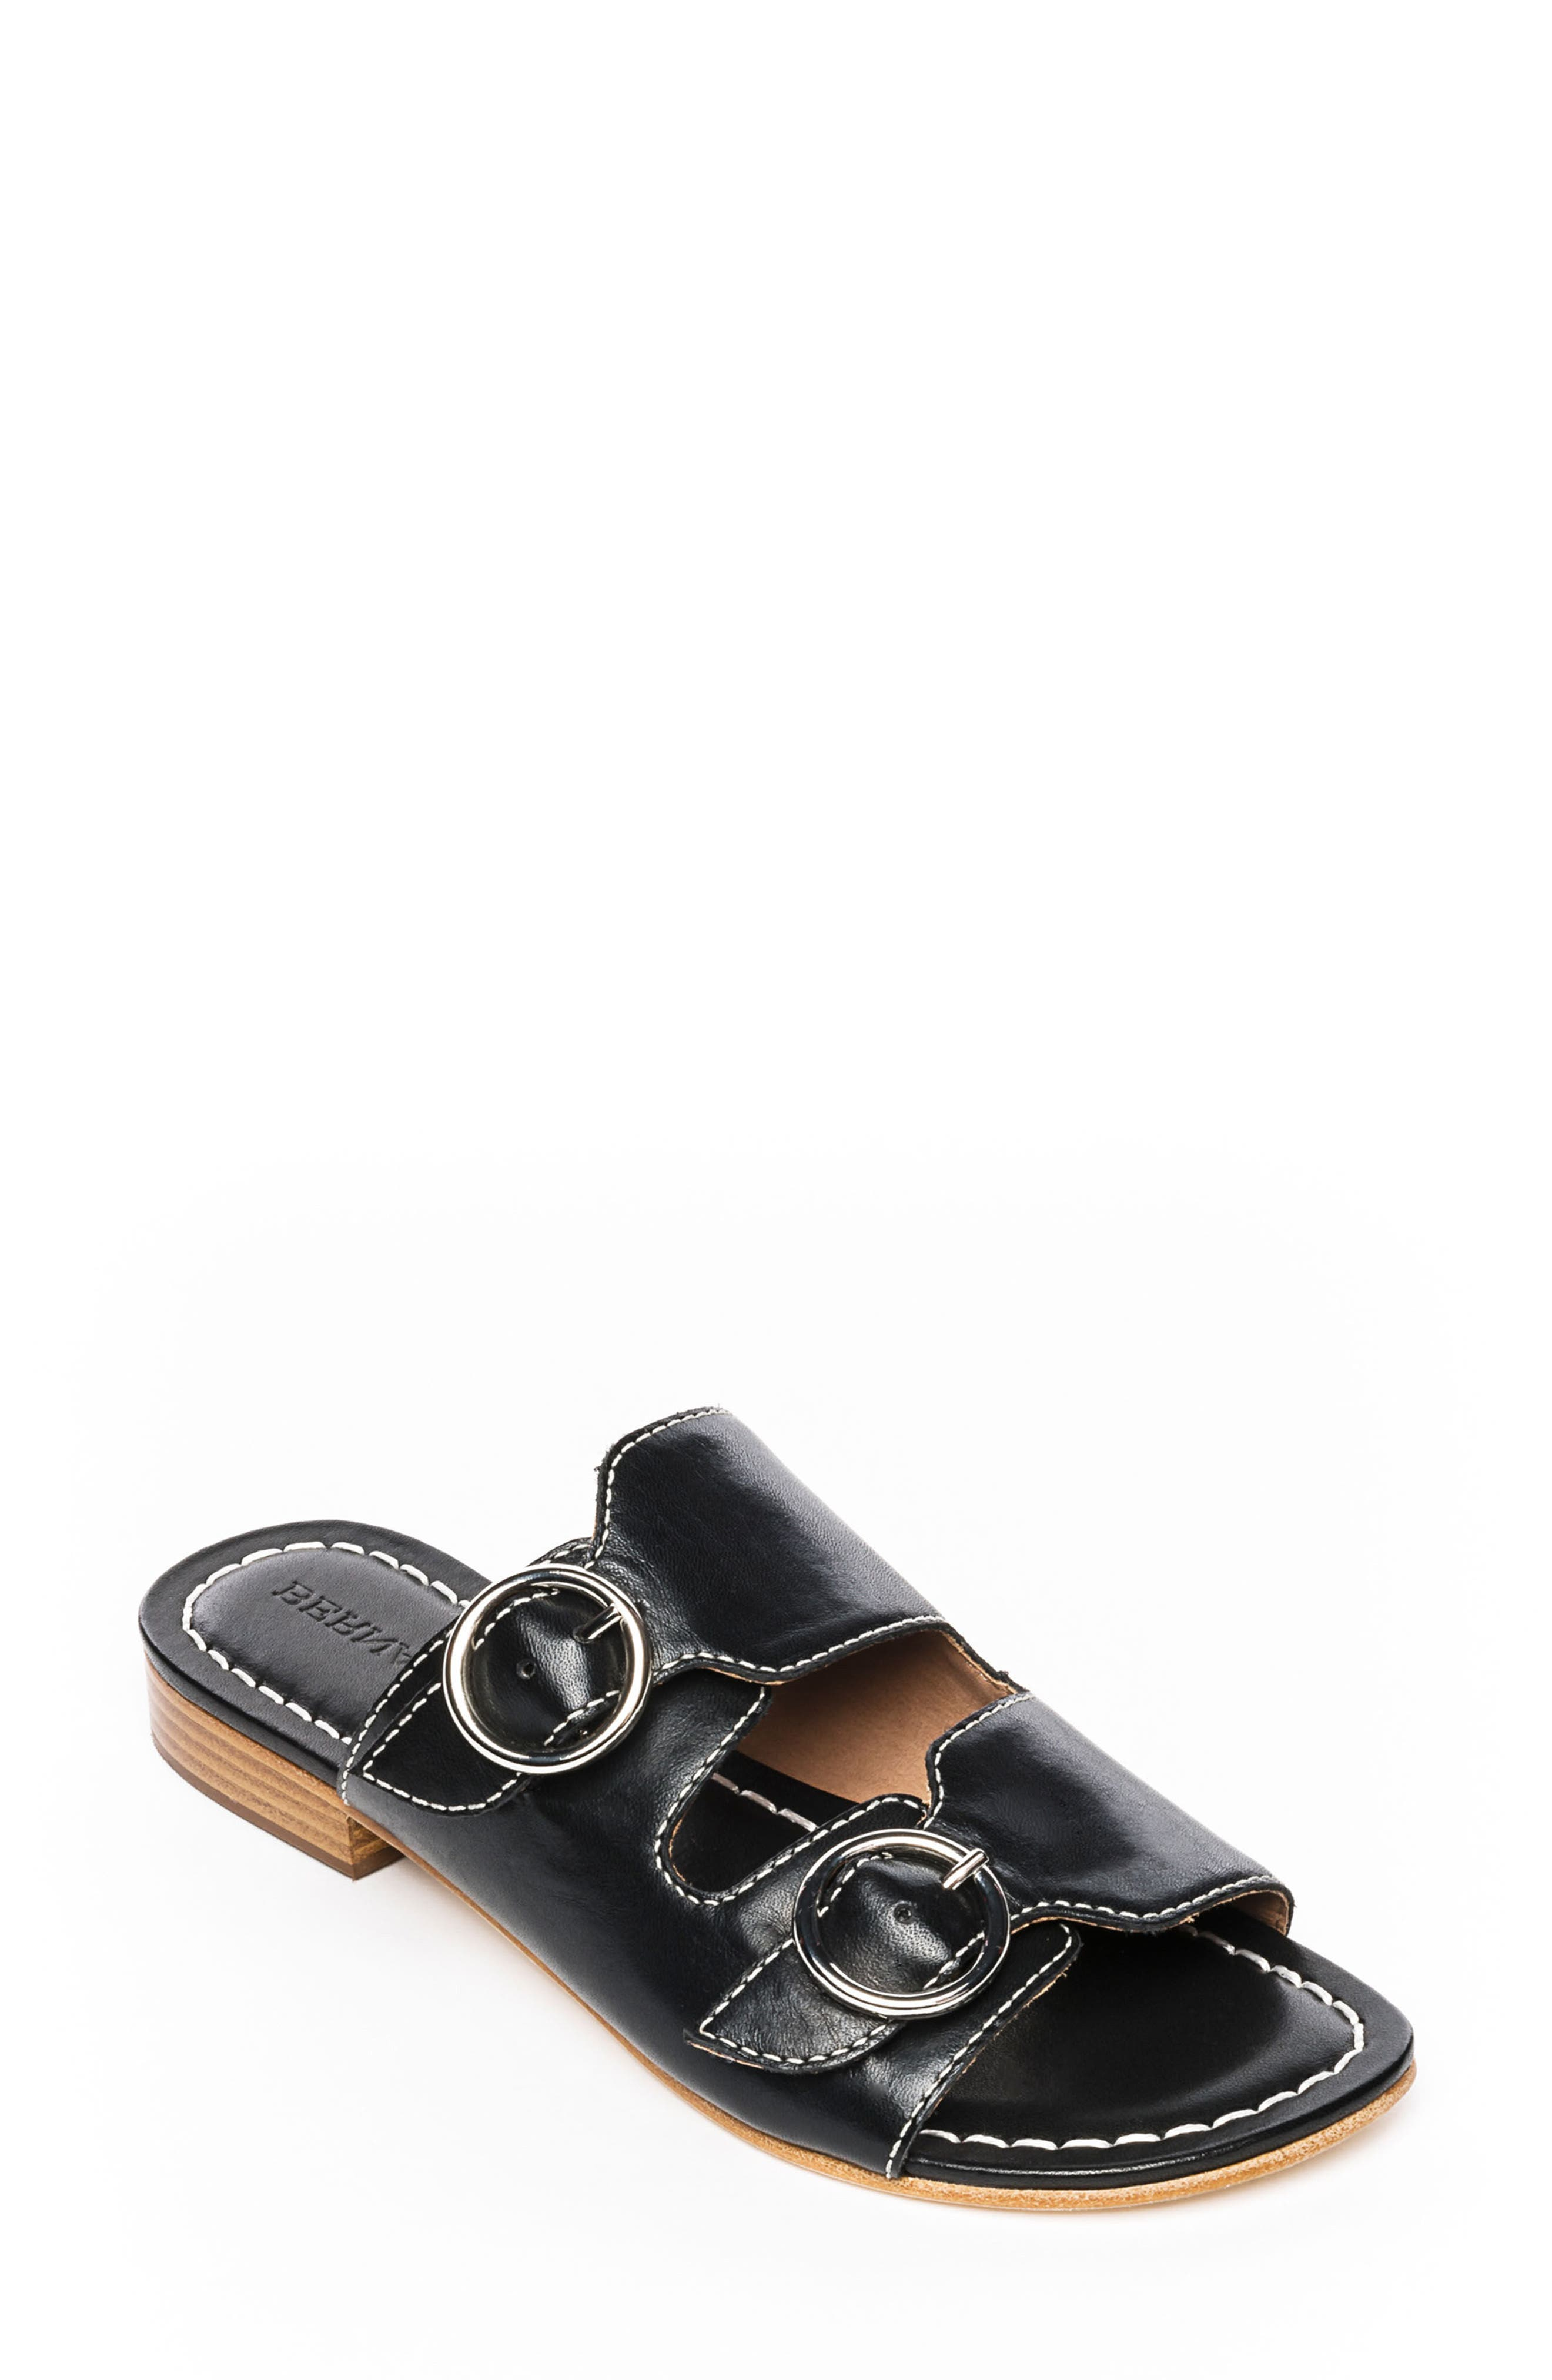 Bernardo Tobi Slide Sandal,                         Main,                         color, Black Leather